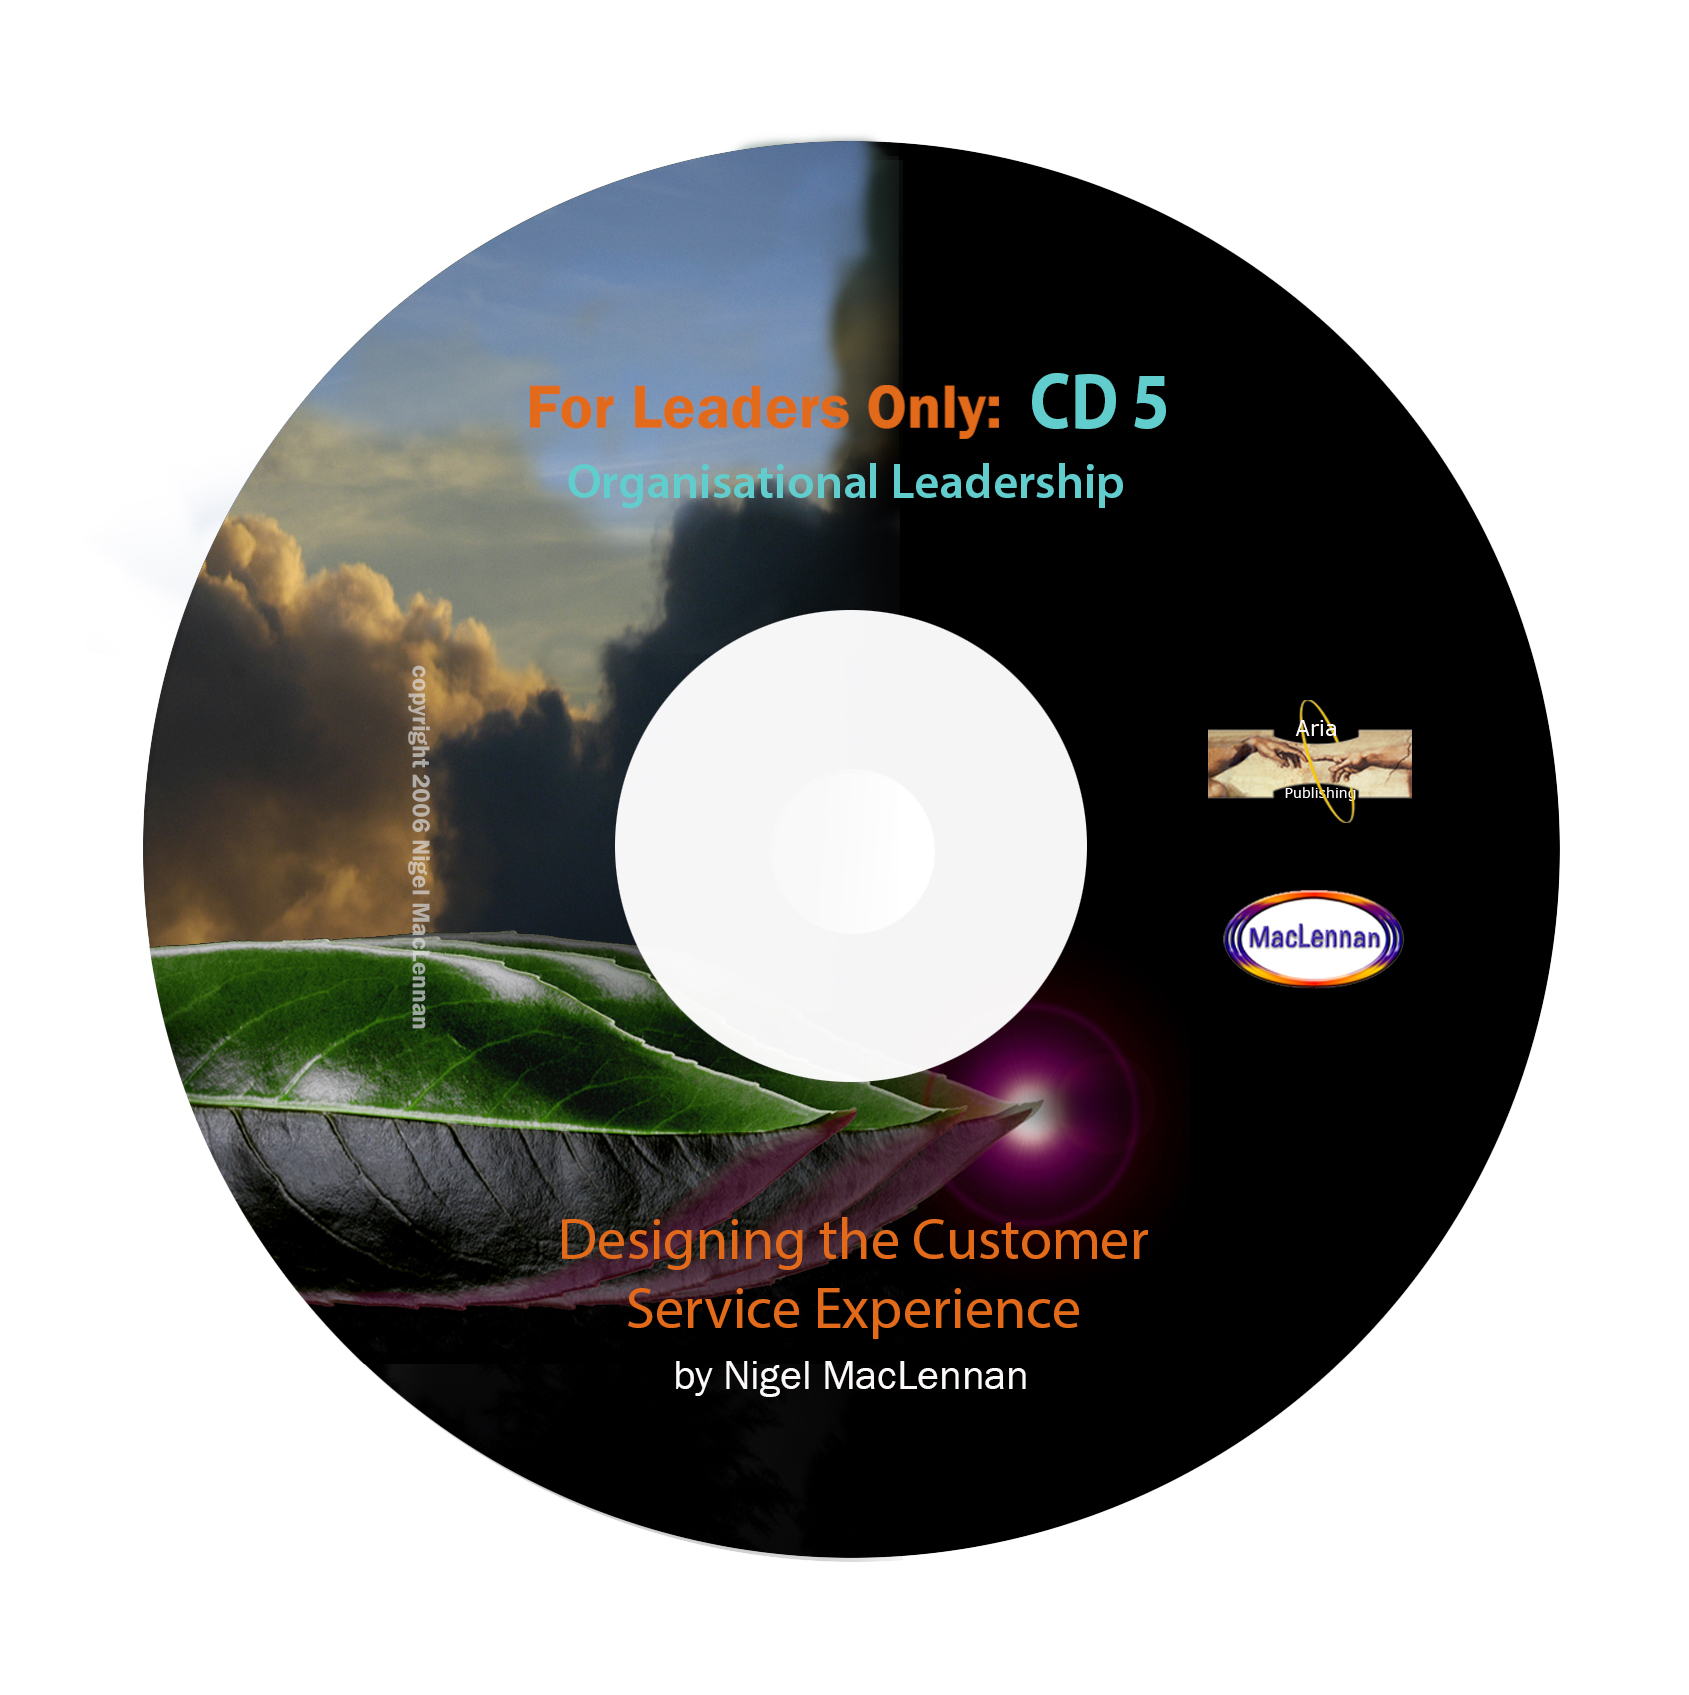 For Leaders Only - Designing the Customer Service Experience CD